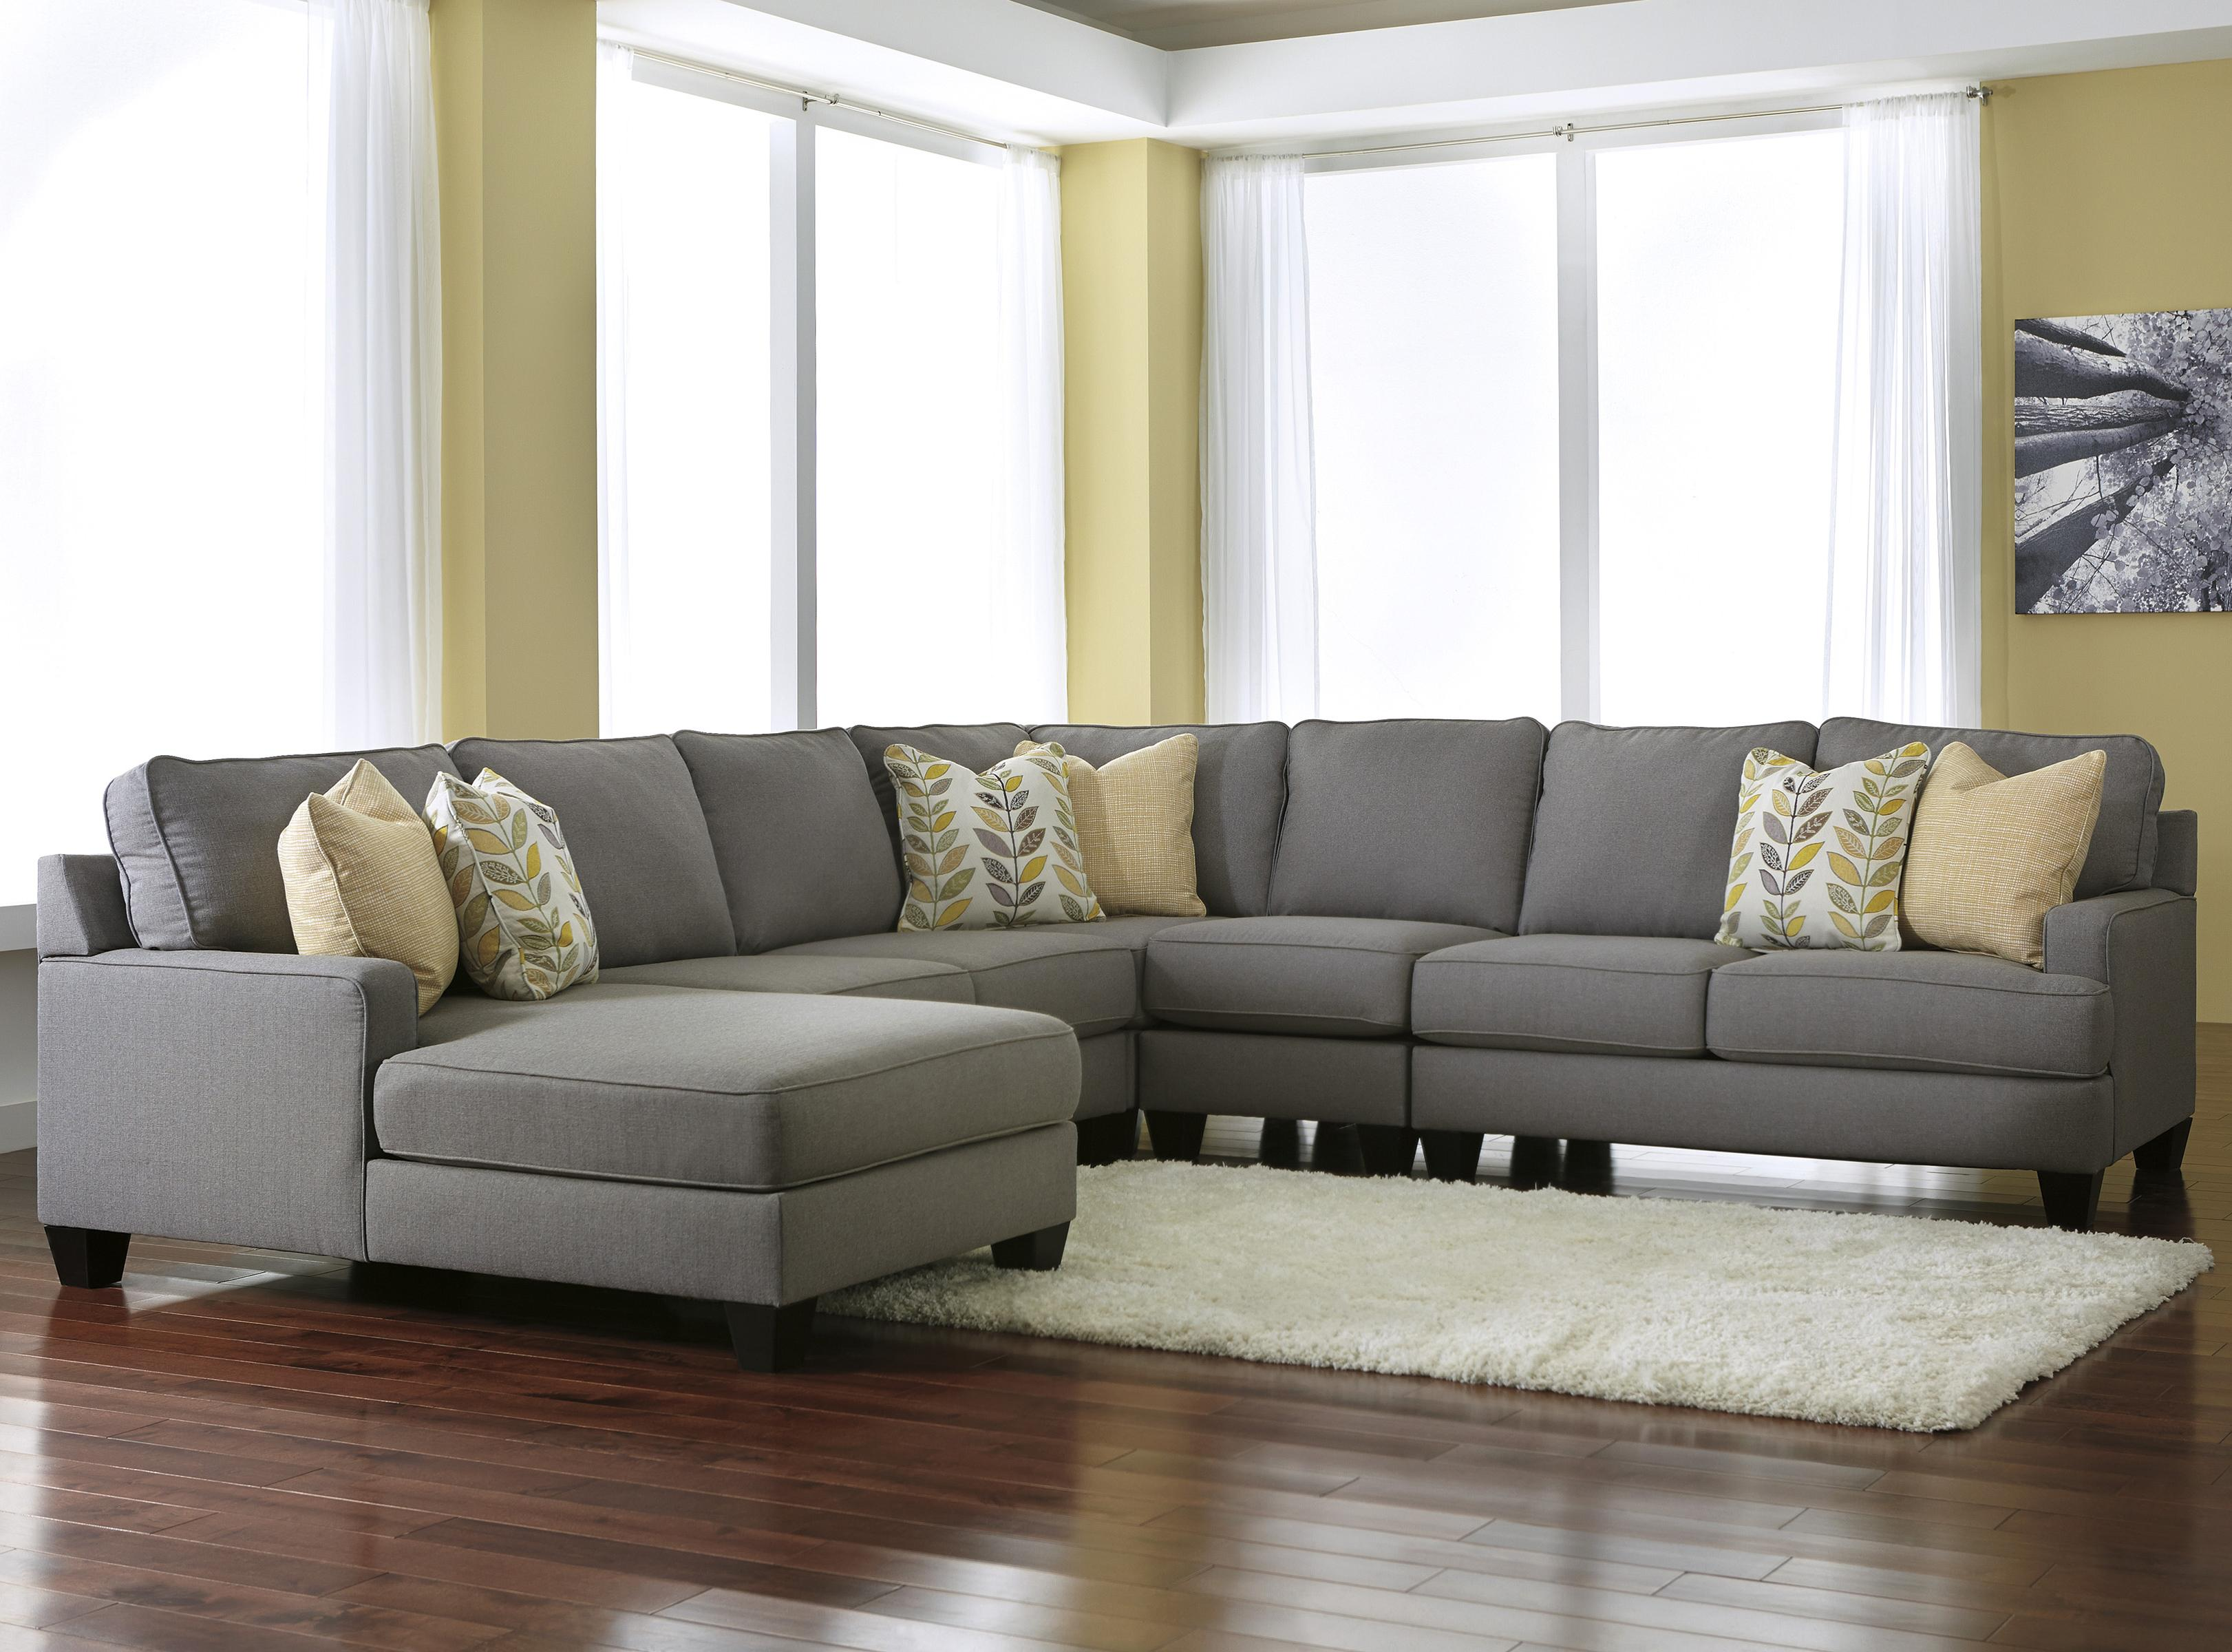 Modern 5 Piece Sectional Sofa With Left Chaise